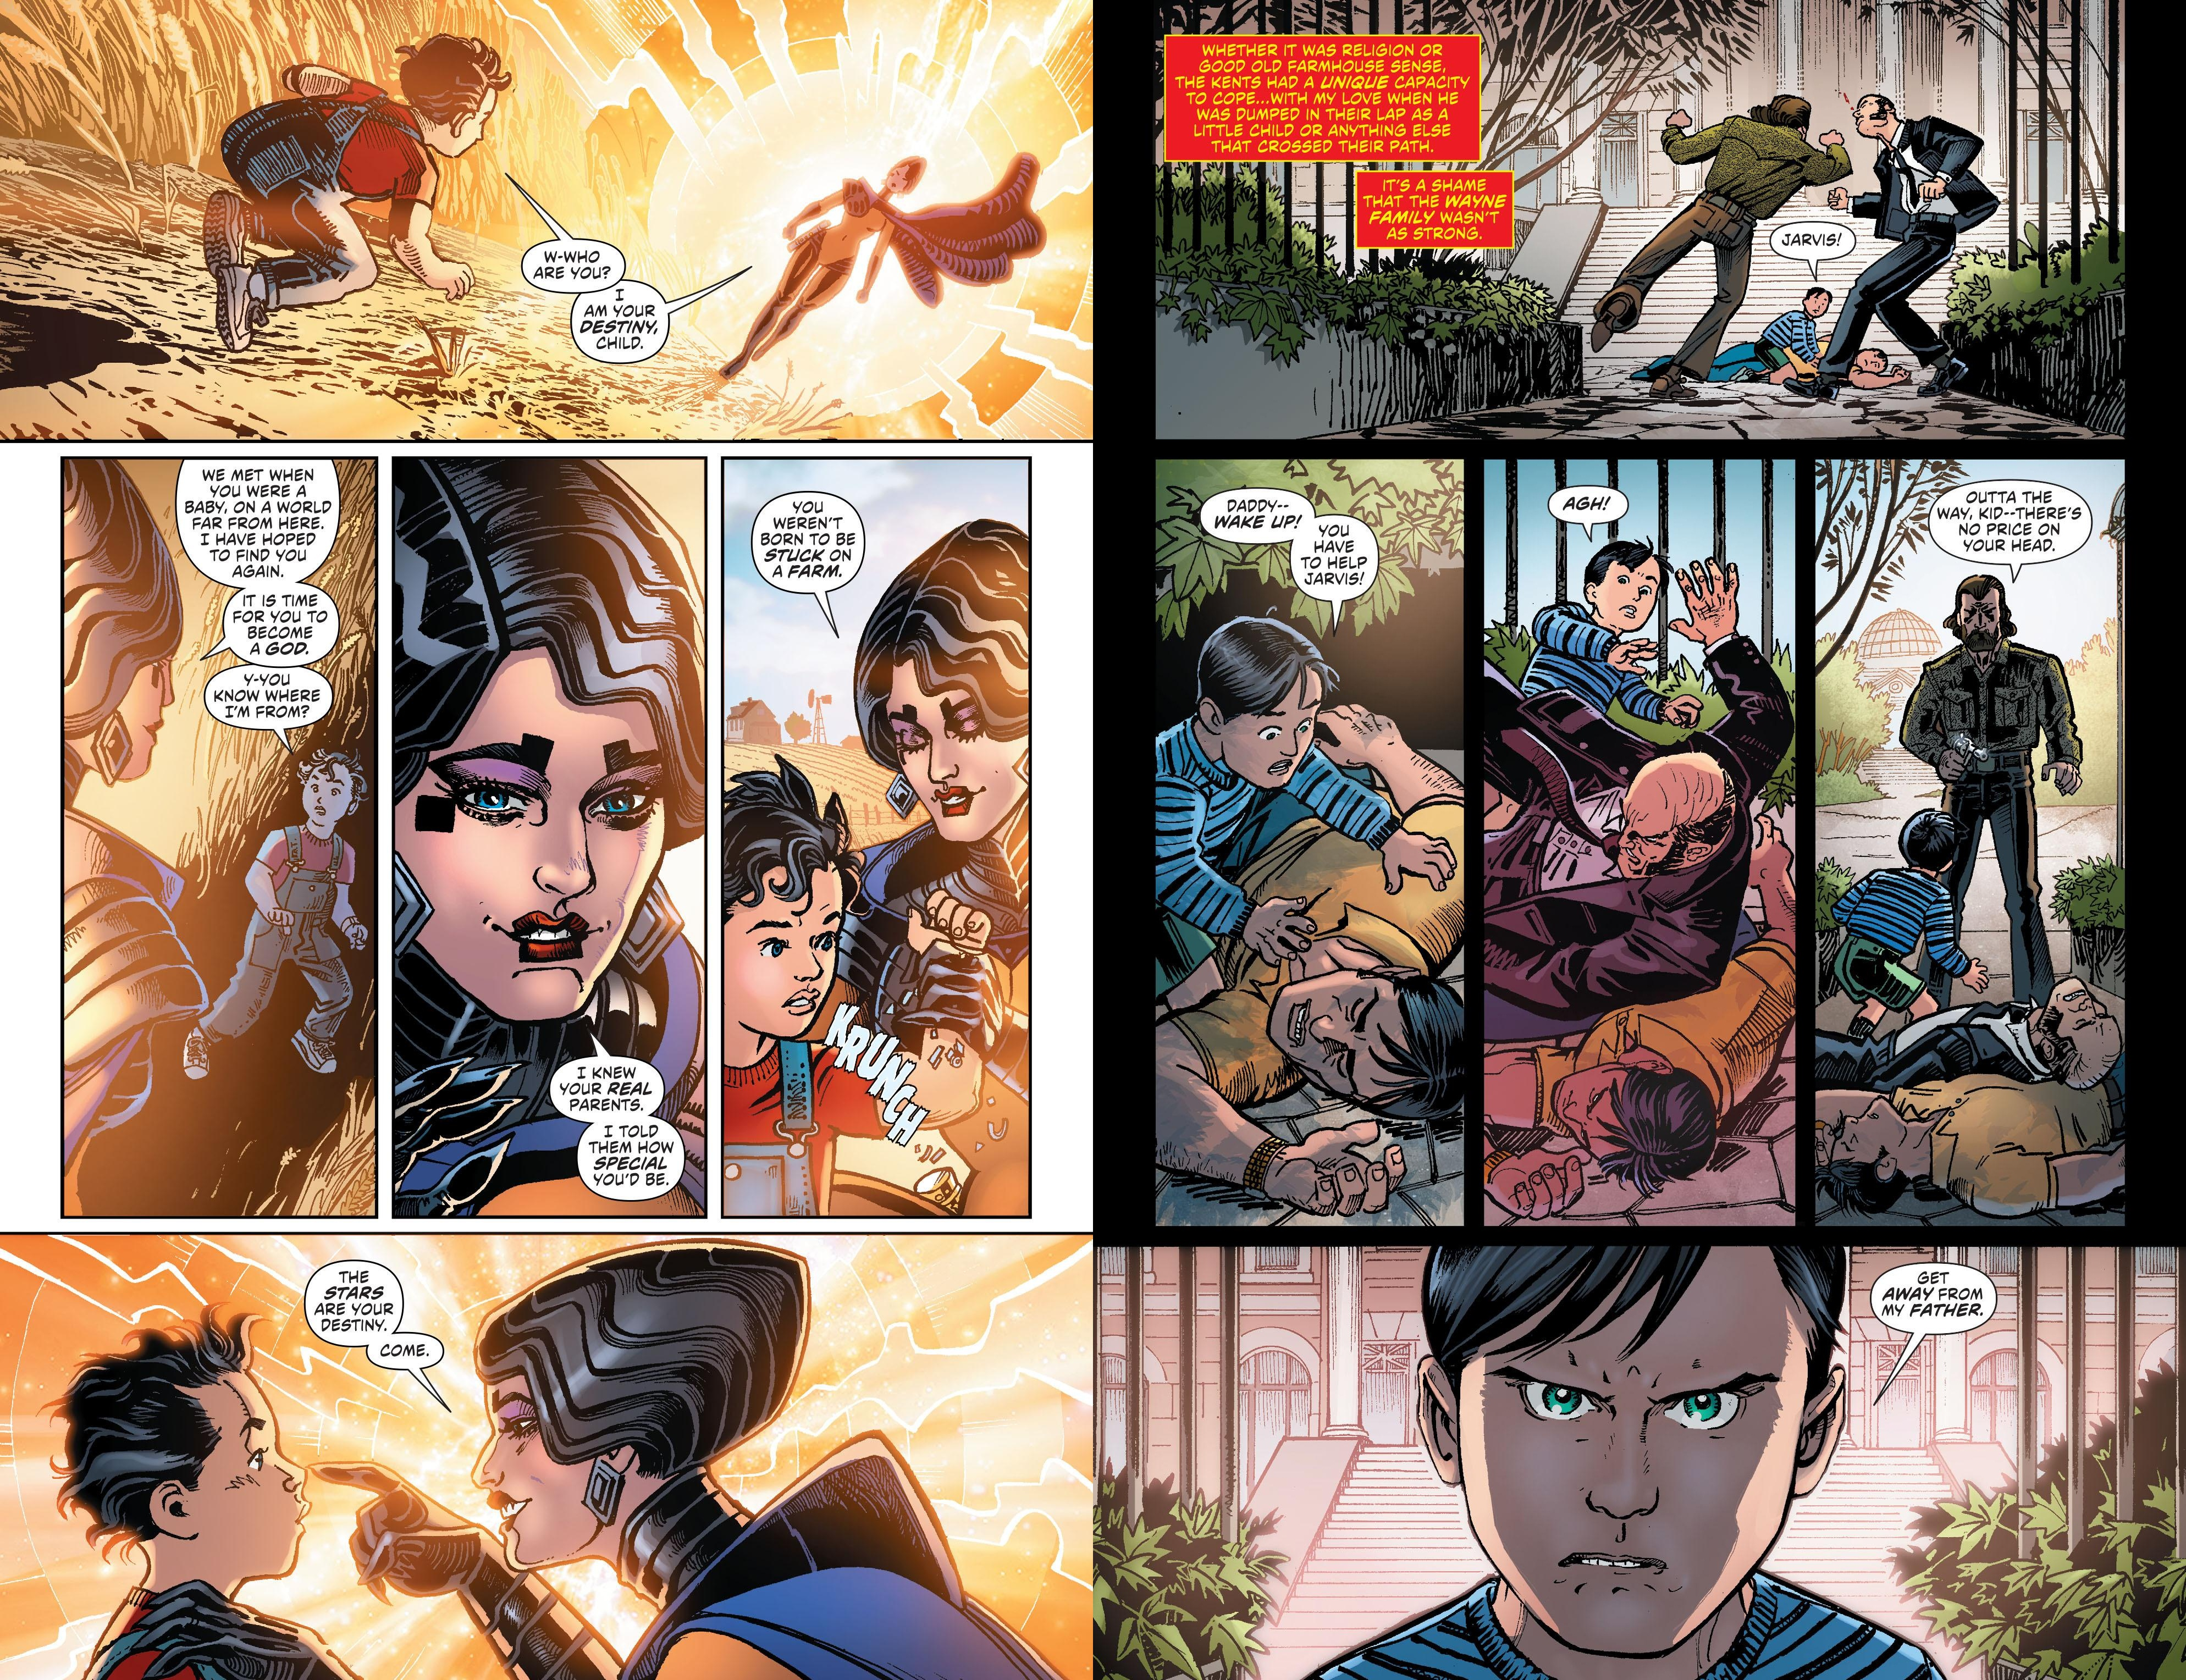 Worlds' Finest v06 - The Secret History of Superman and Batman review